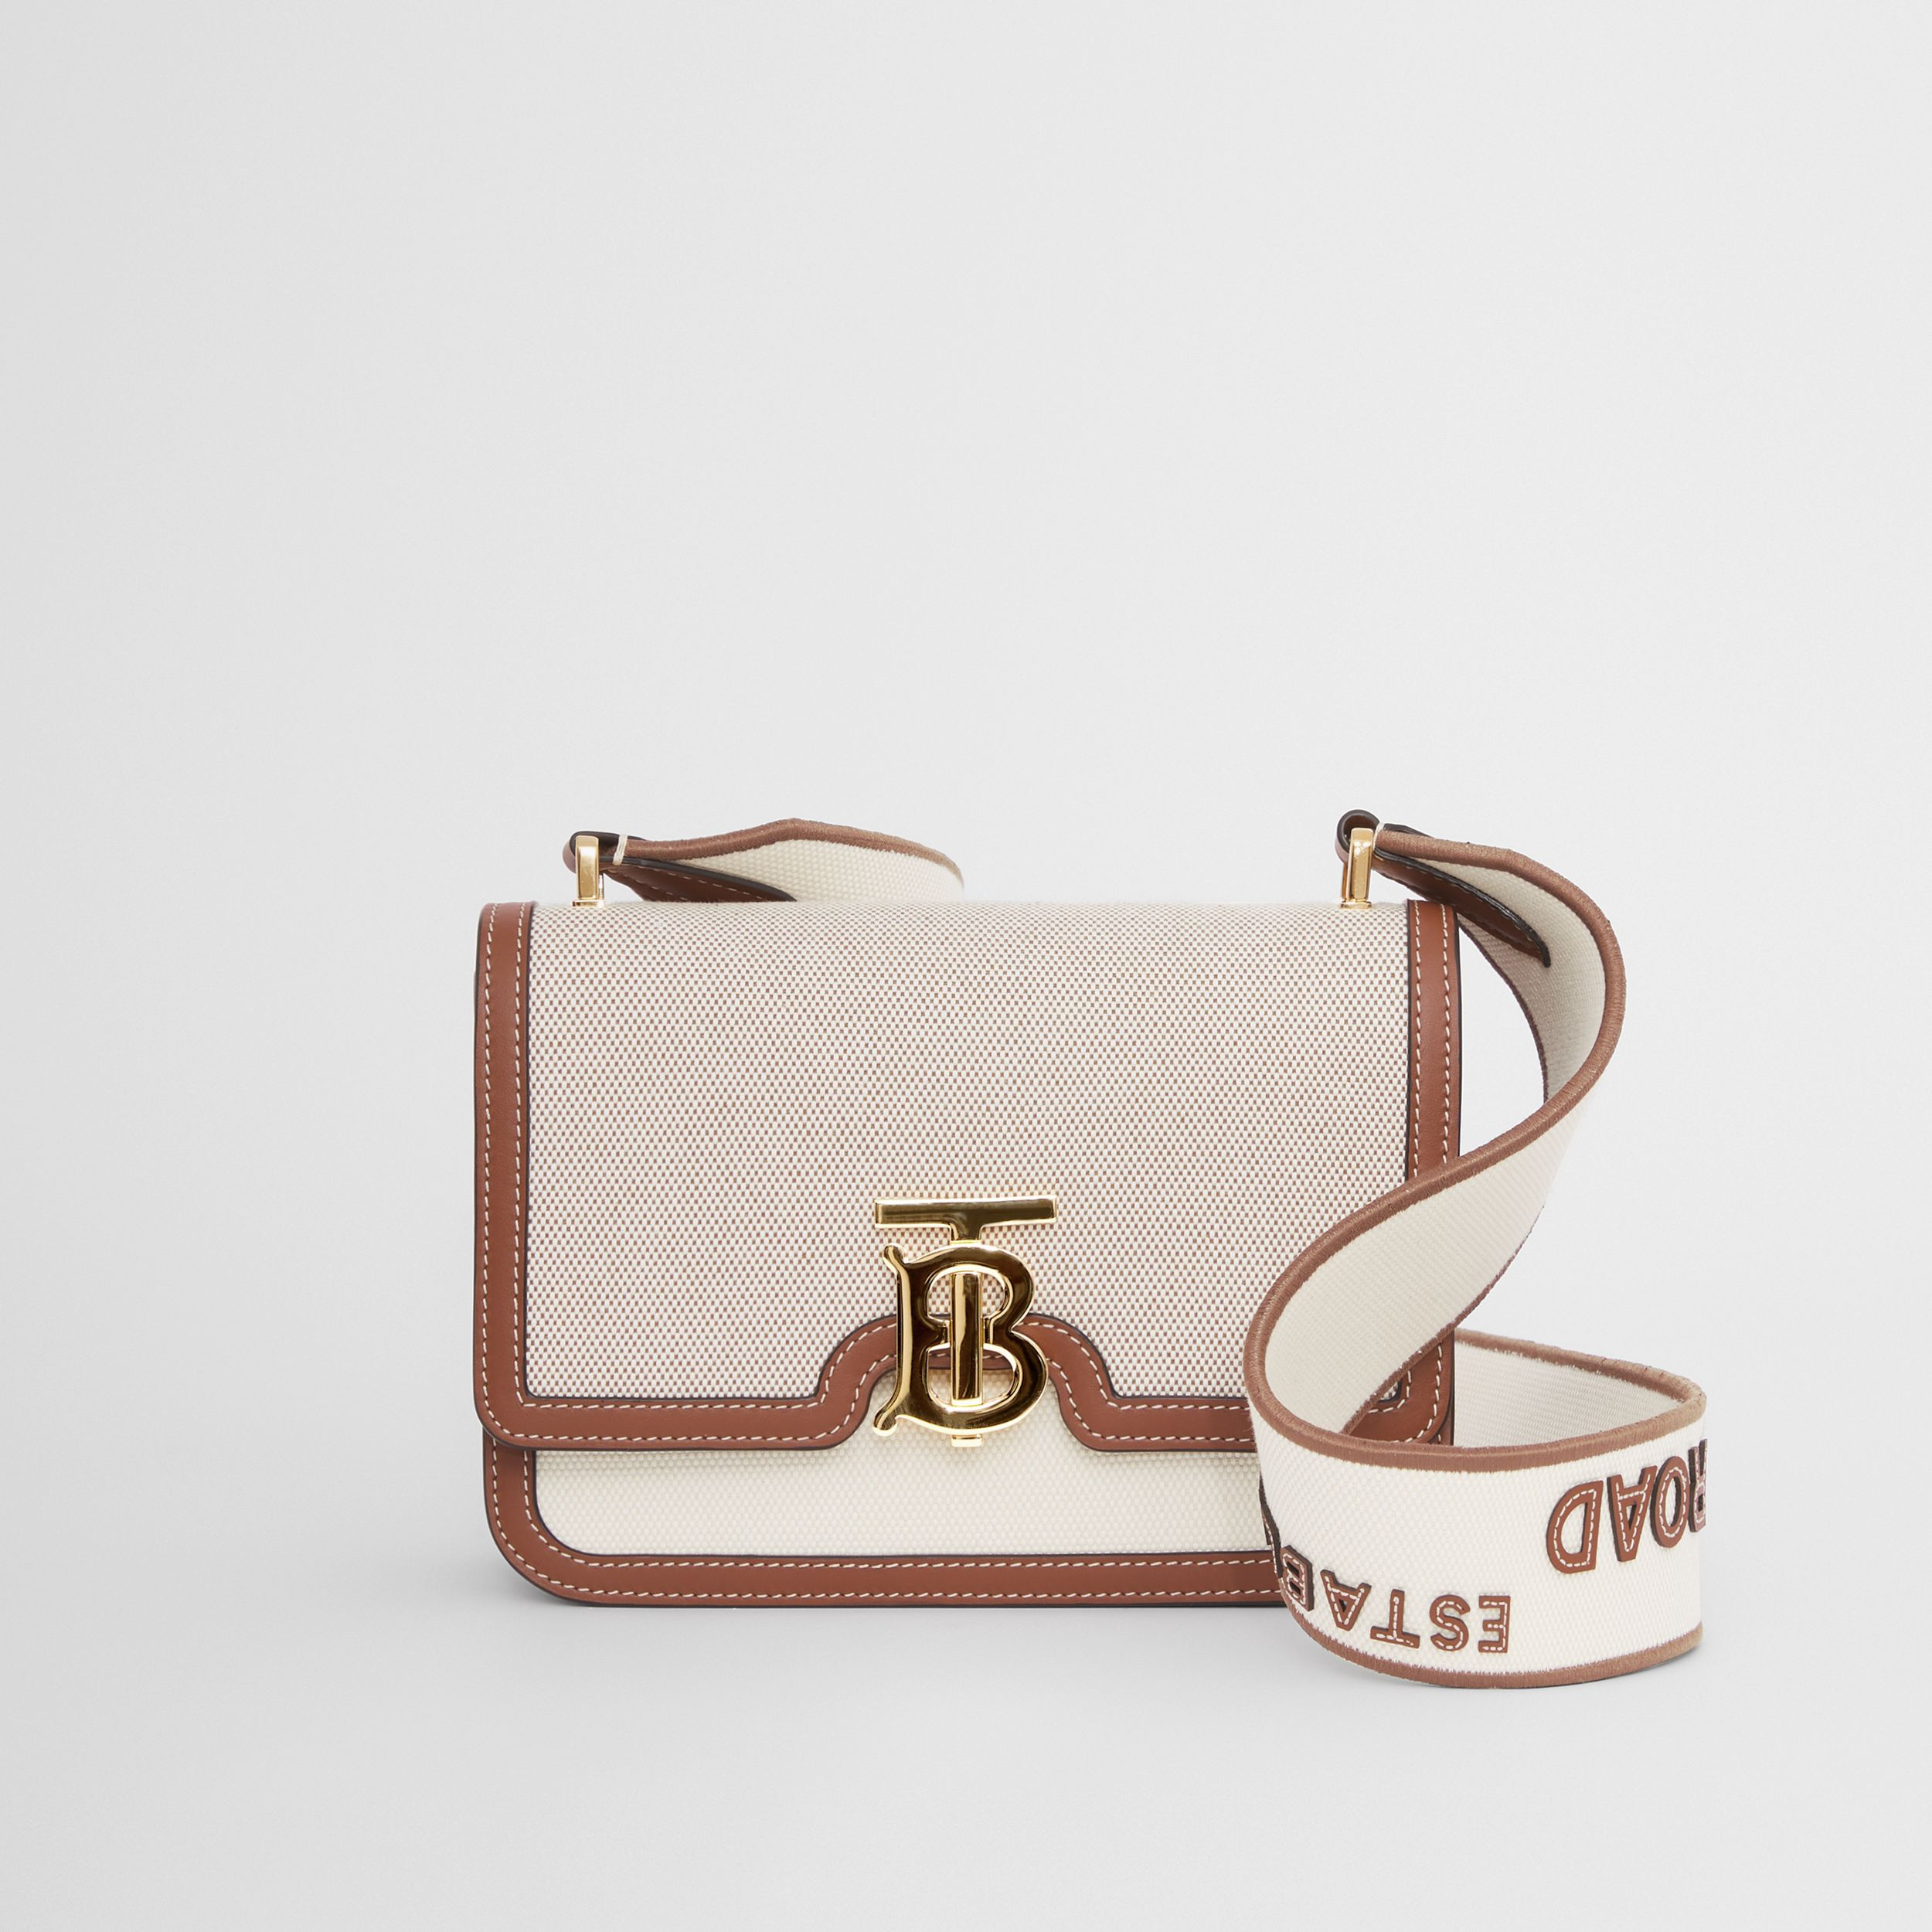 Small Cotton Canvas and Leather TB Bag in Soft Fawn/ecru - Women | Burberry United Kingdom - 1